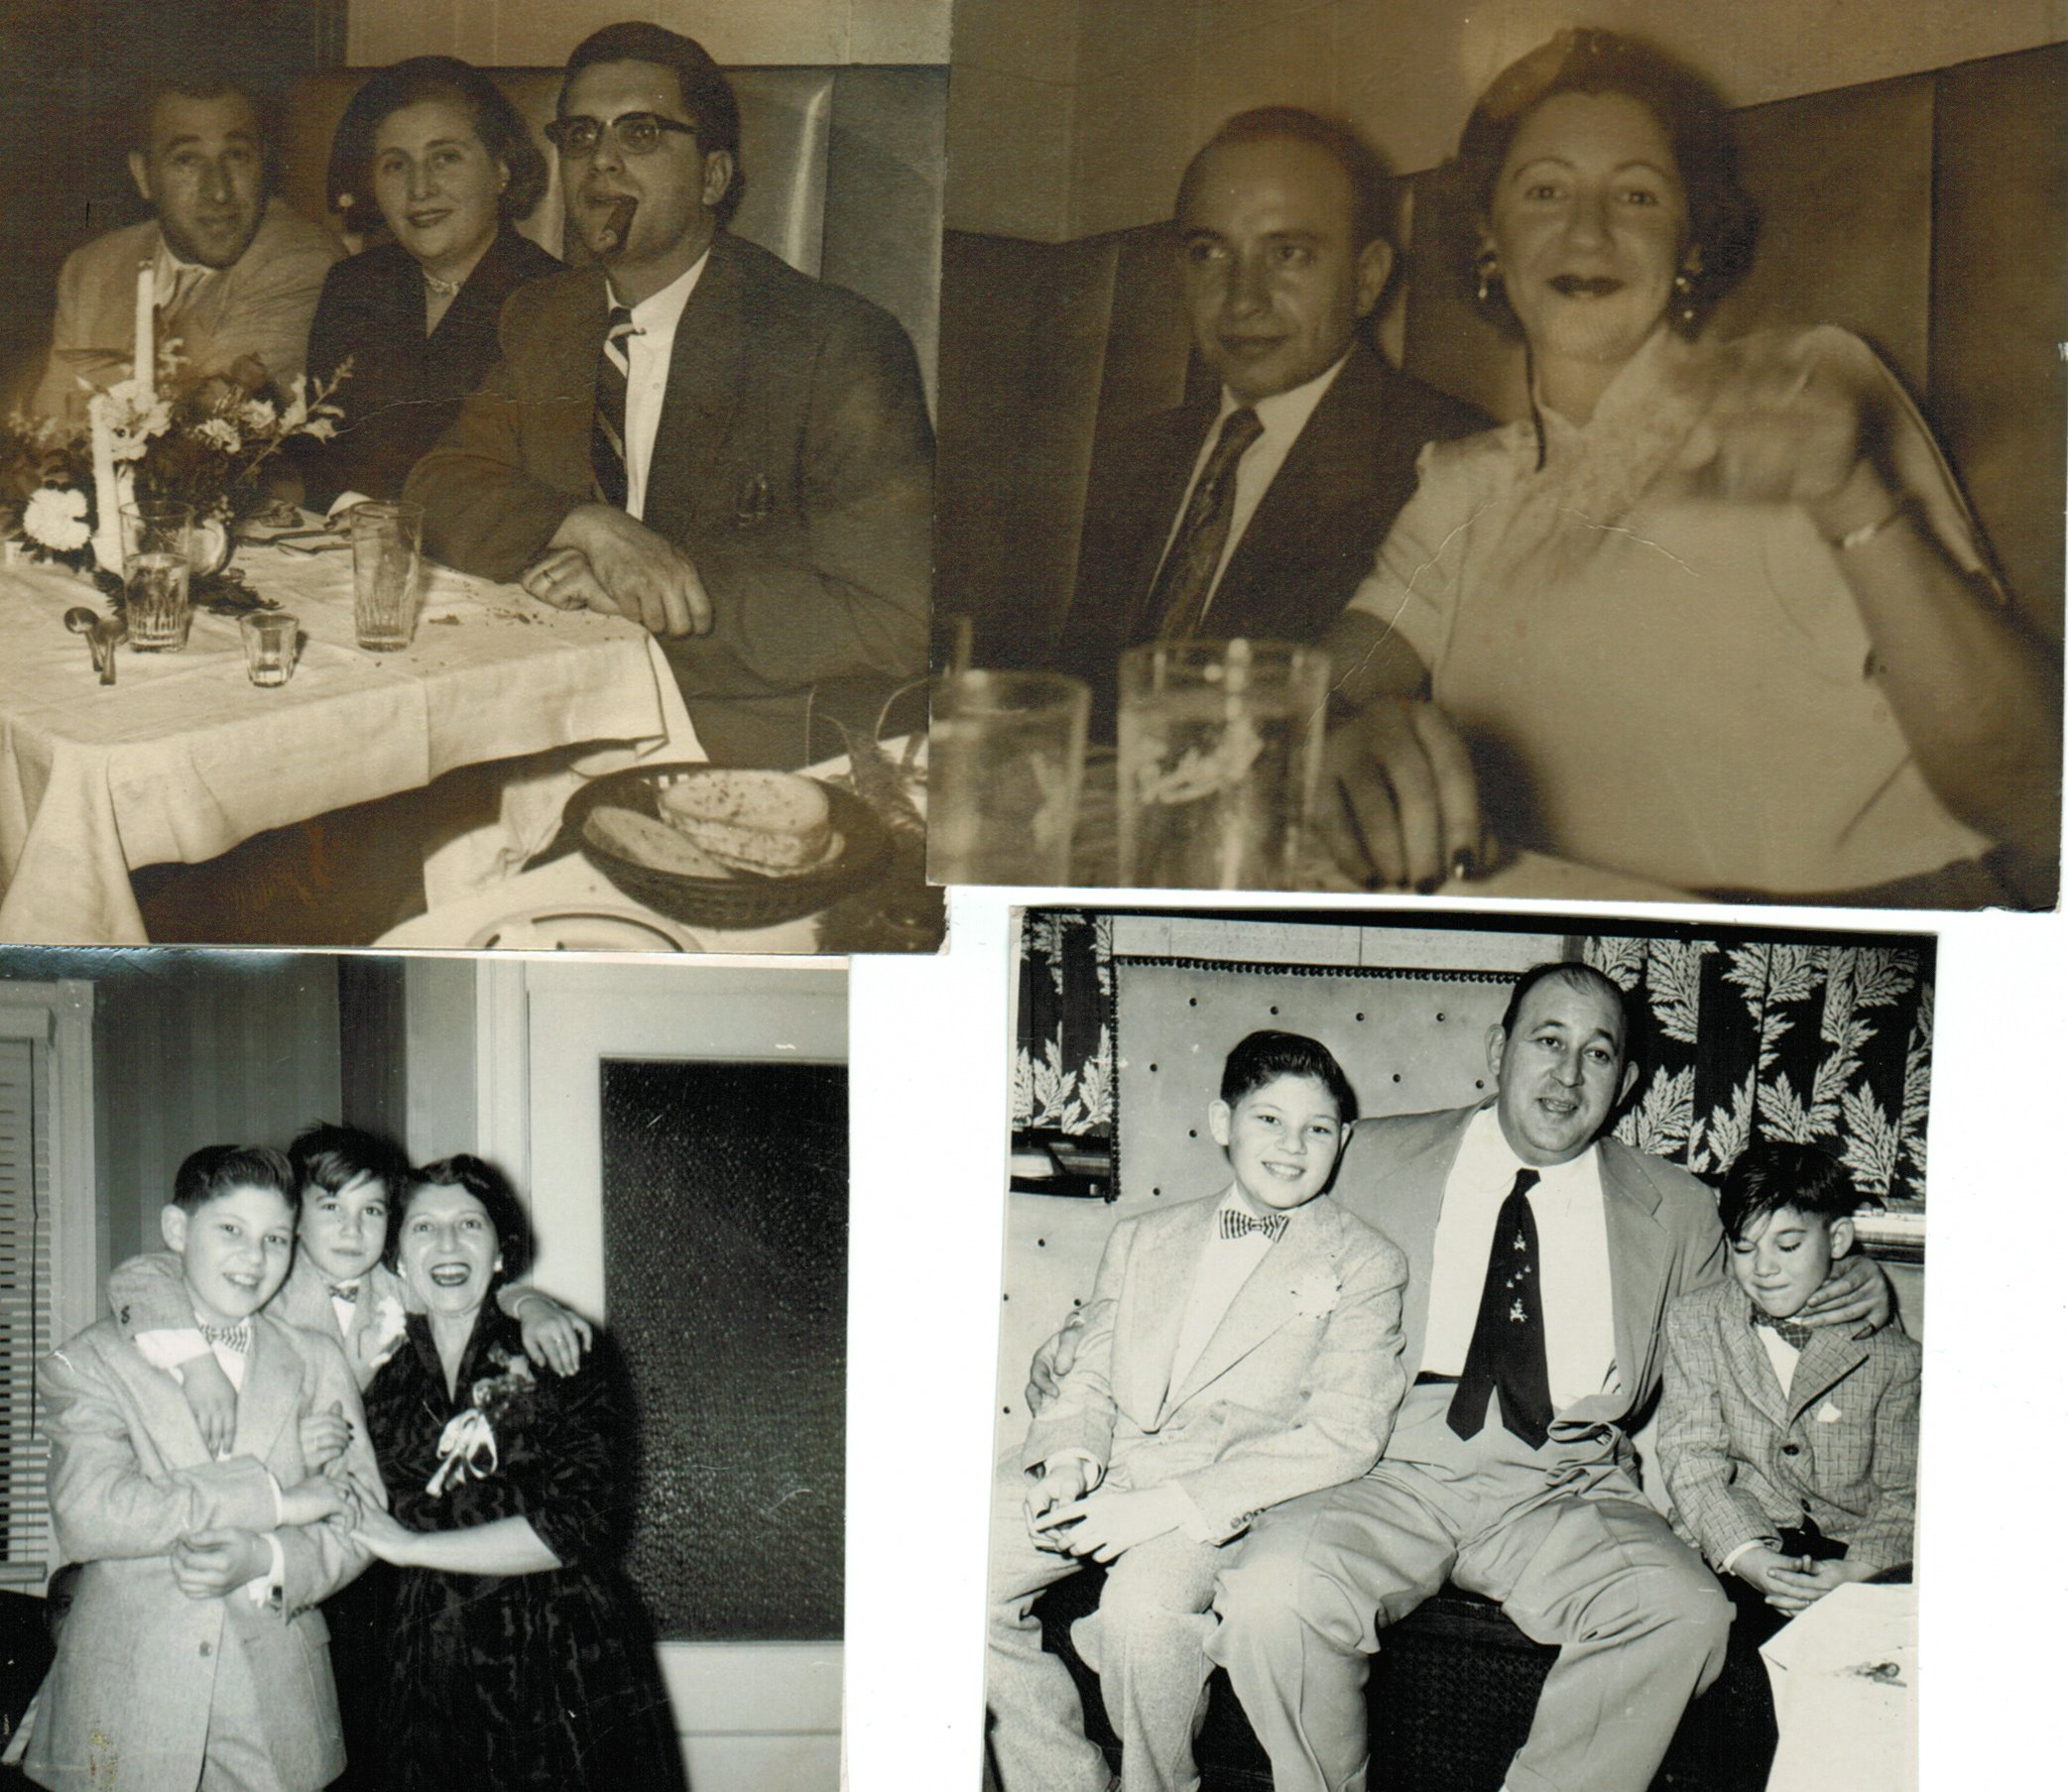 Richard%27s Bar Mitzvah - 1953 (1)